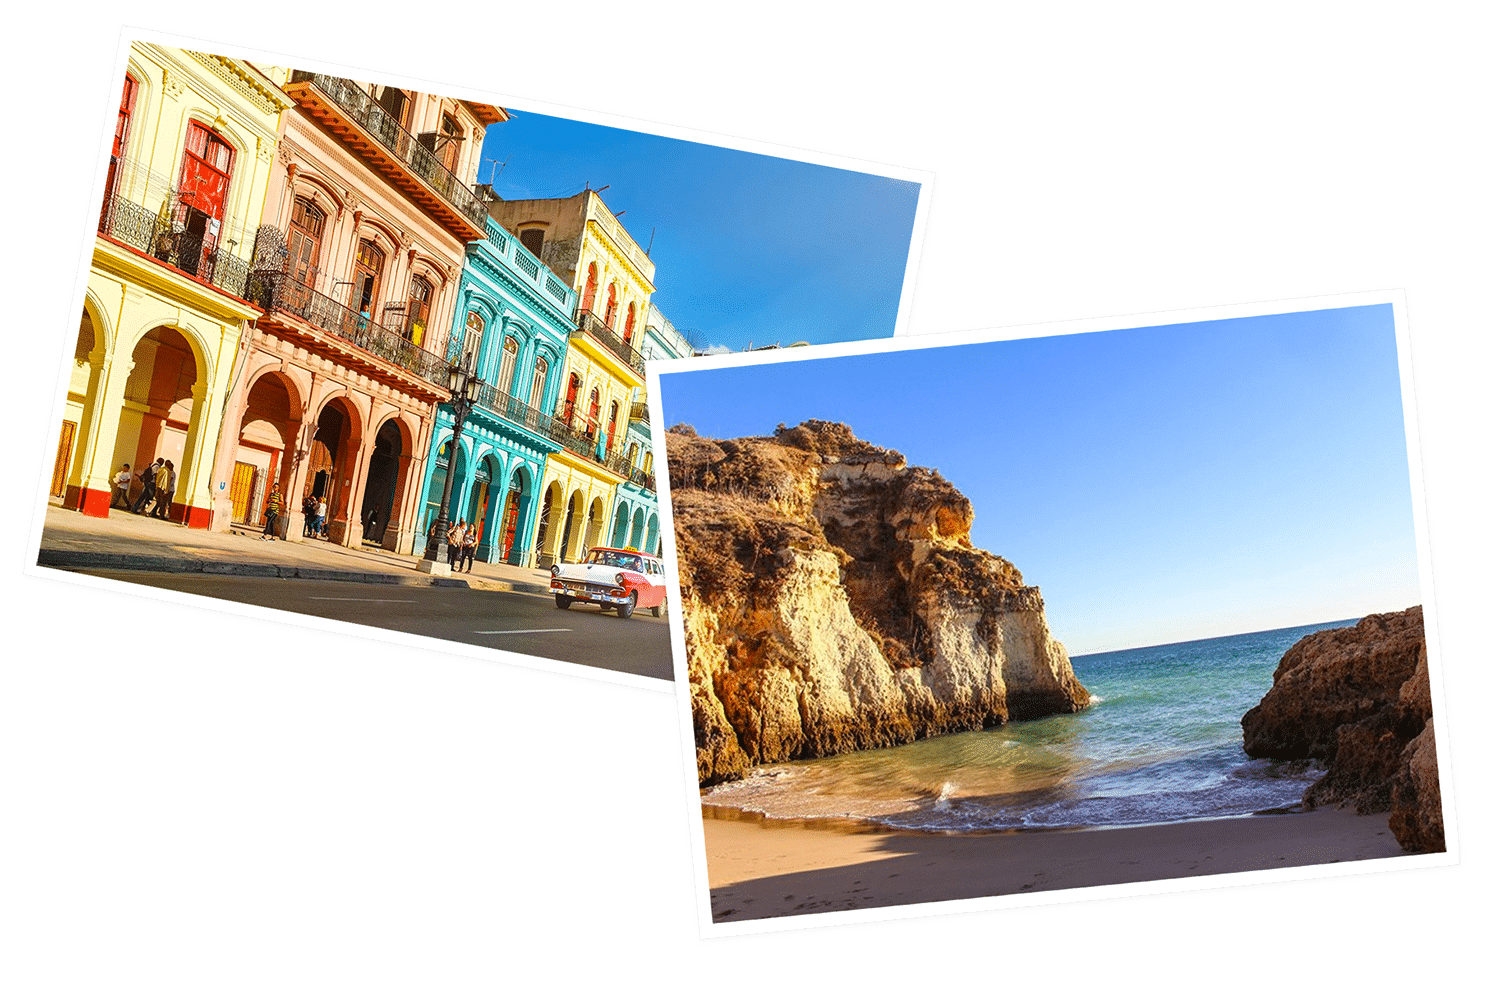 Postcards of the Havana and Algarve